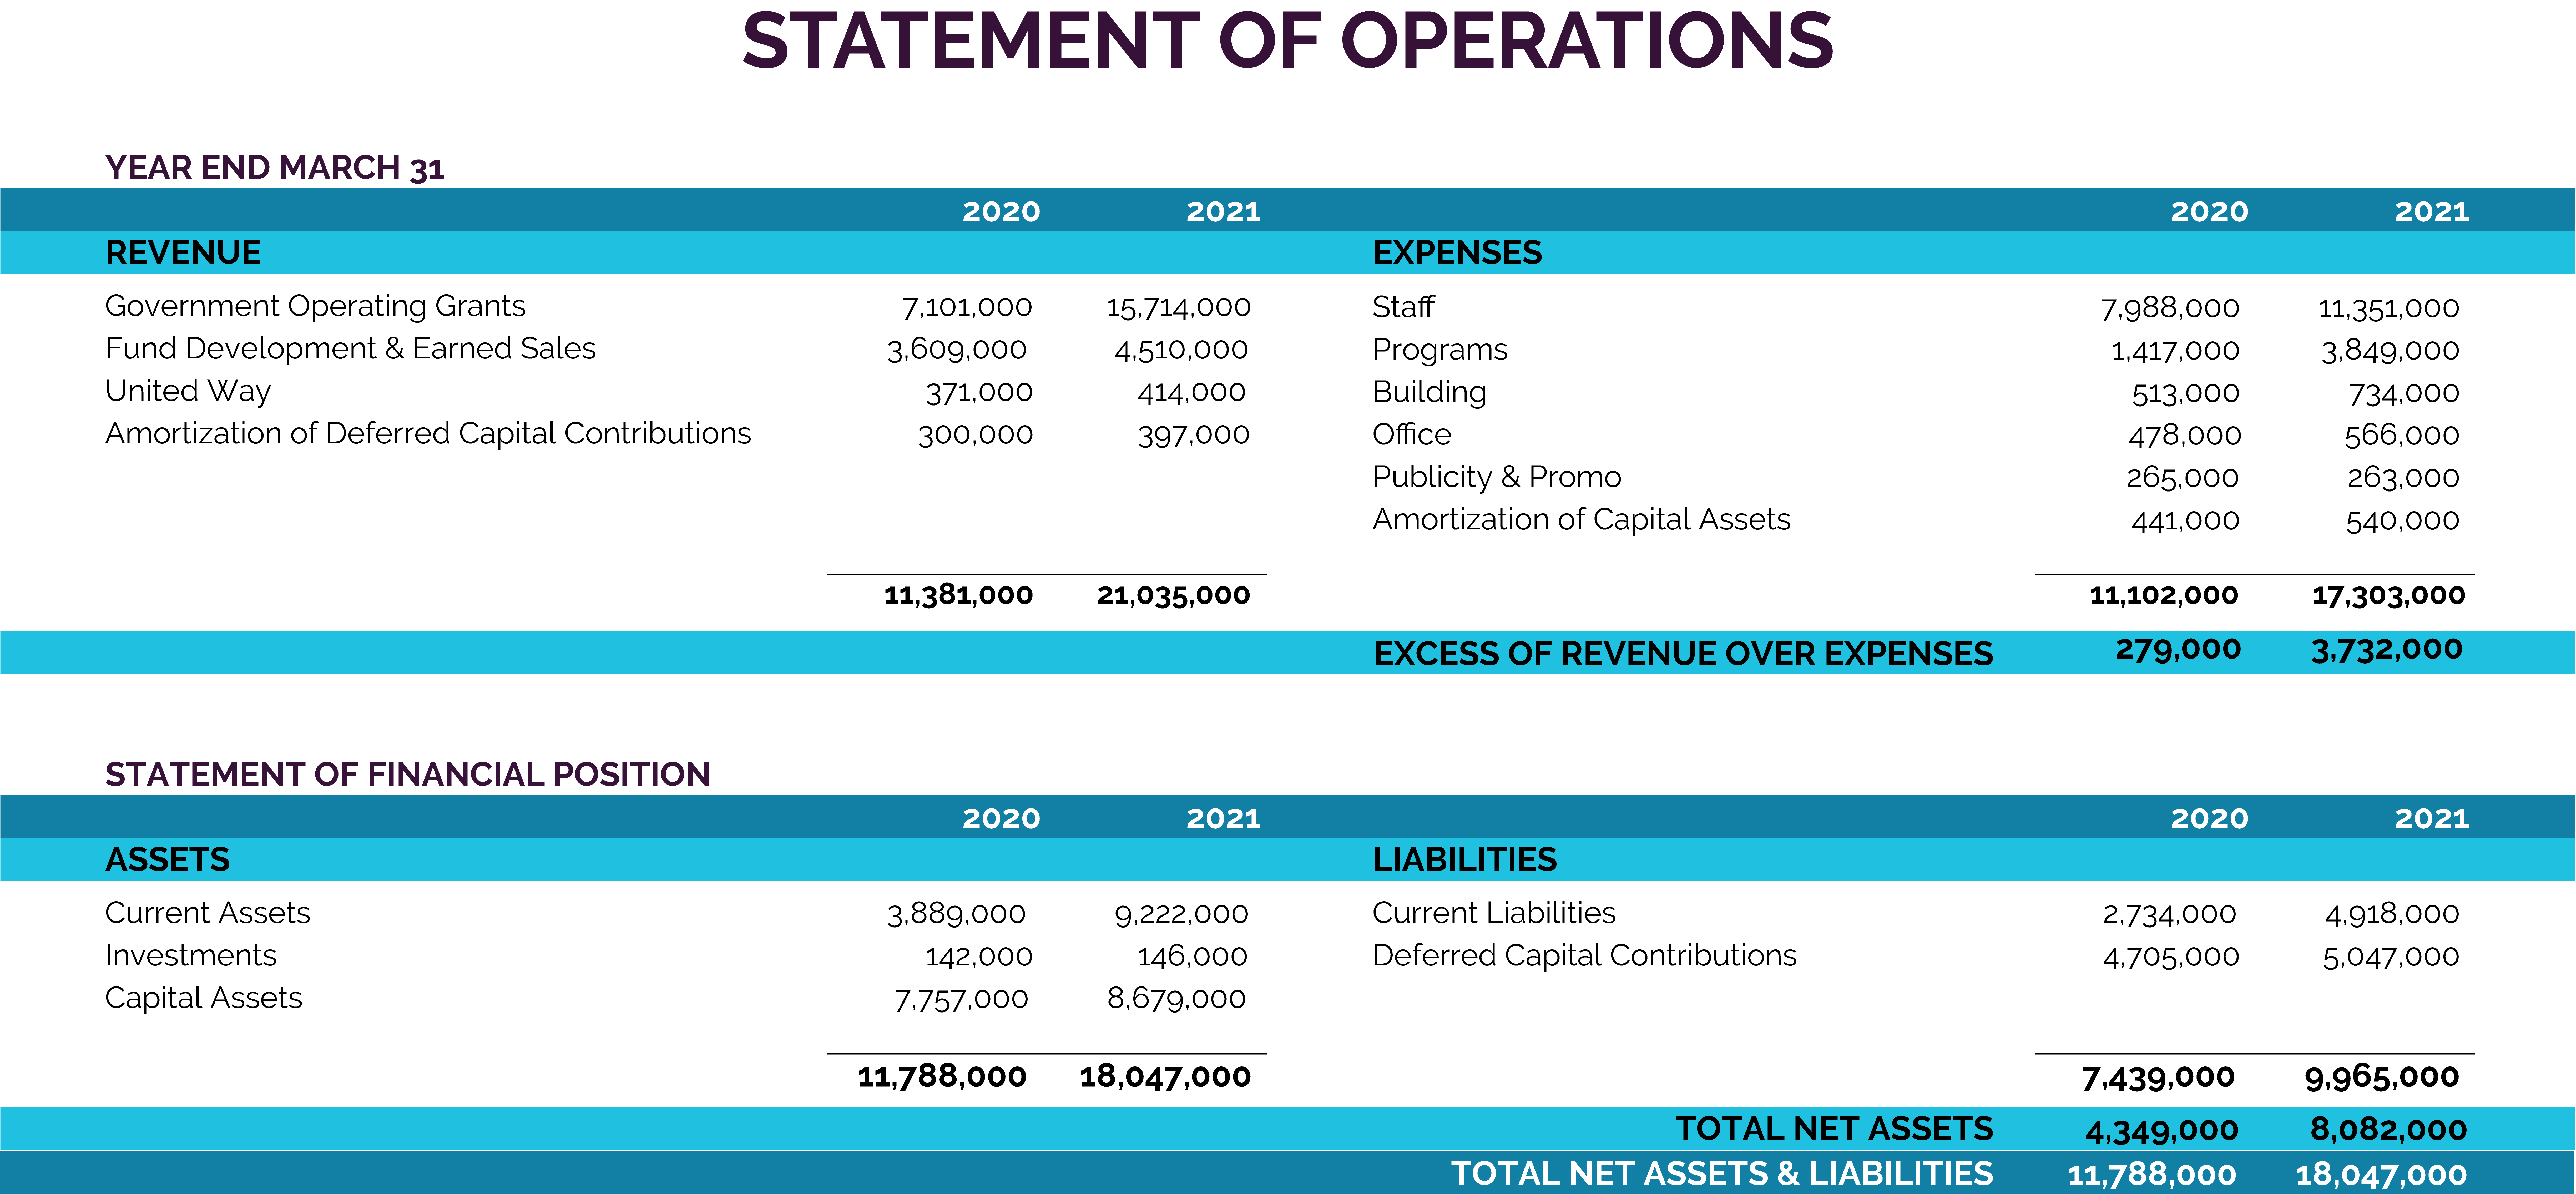 Statement of Operations - Revenue and Expenses Table